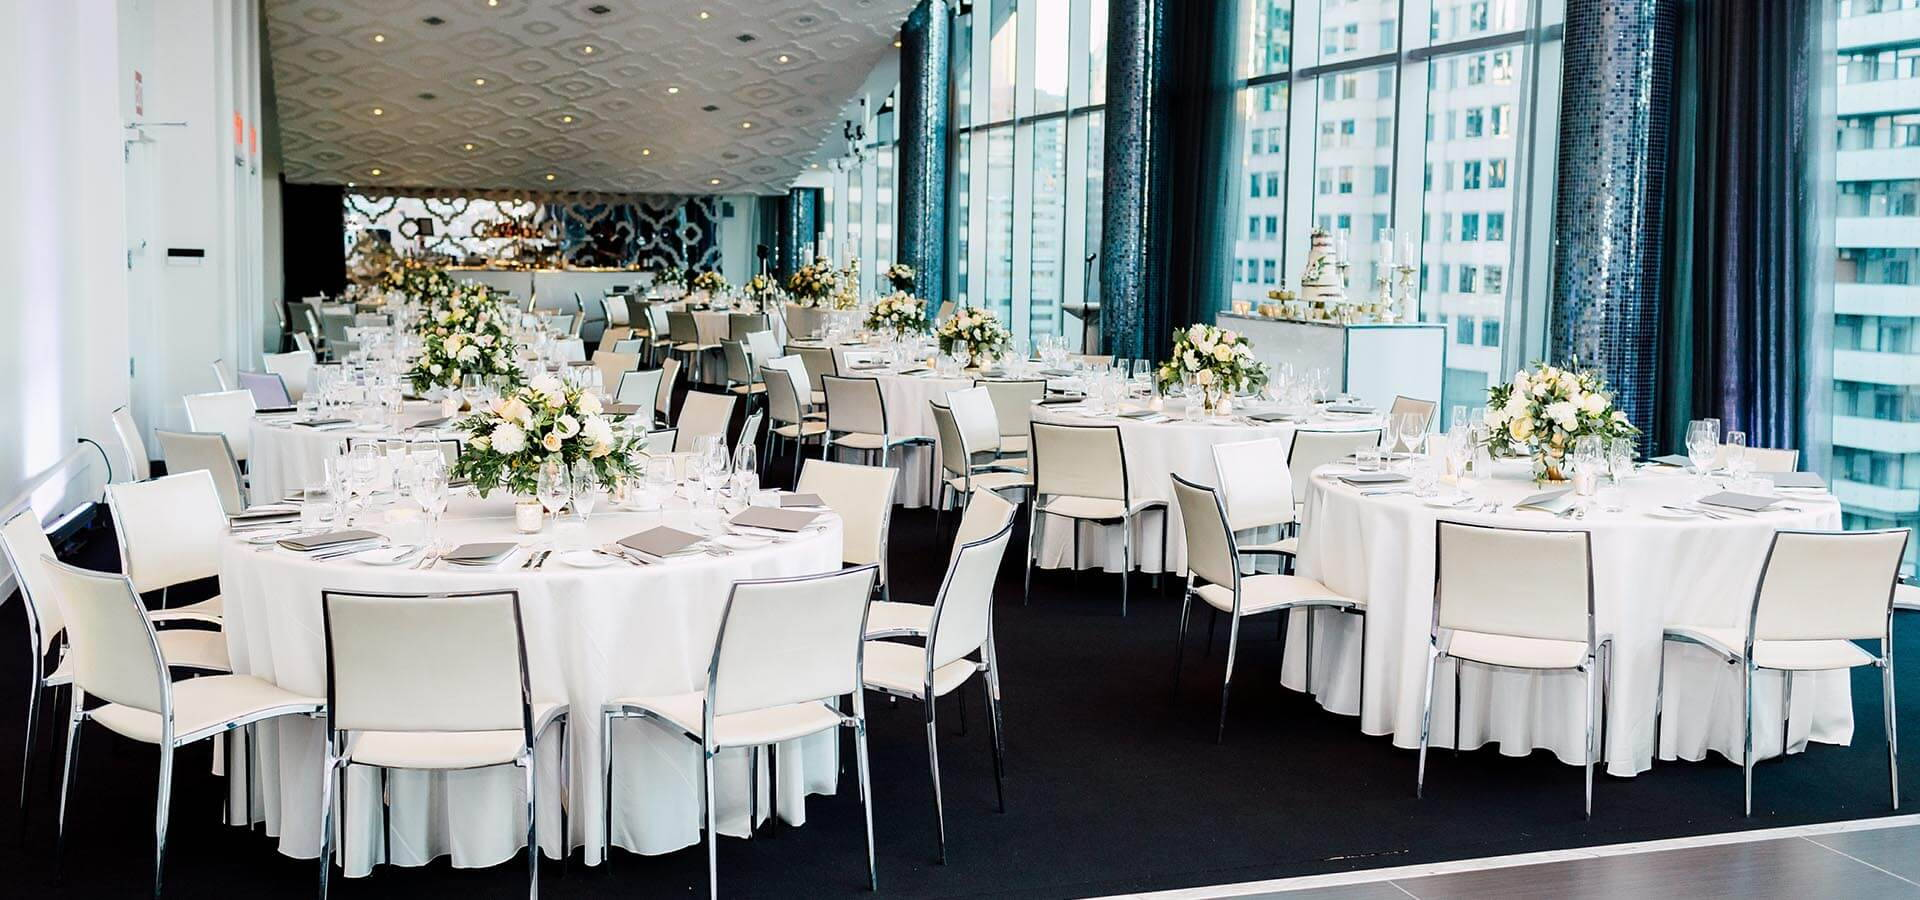 Hero image for Iliana and Michael's Simply Elegant Wedding at Malaparte